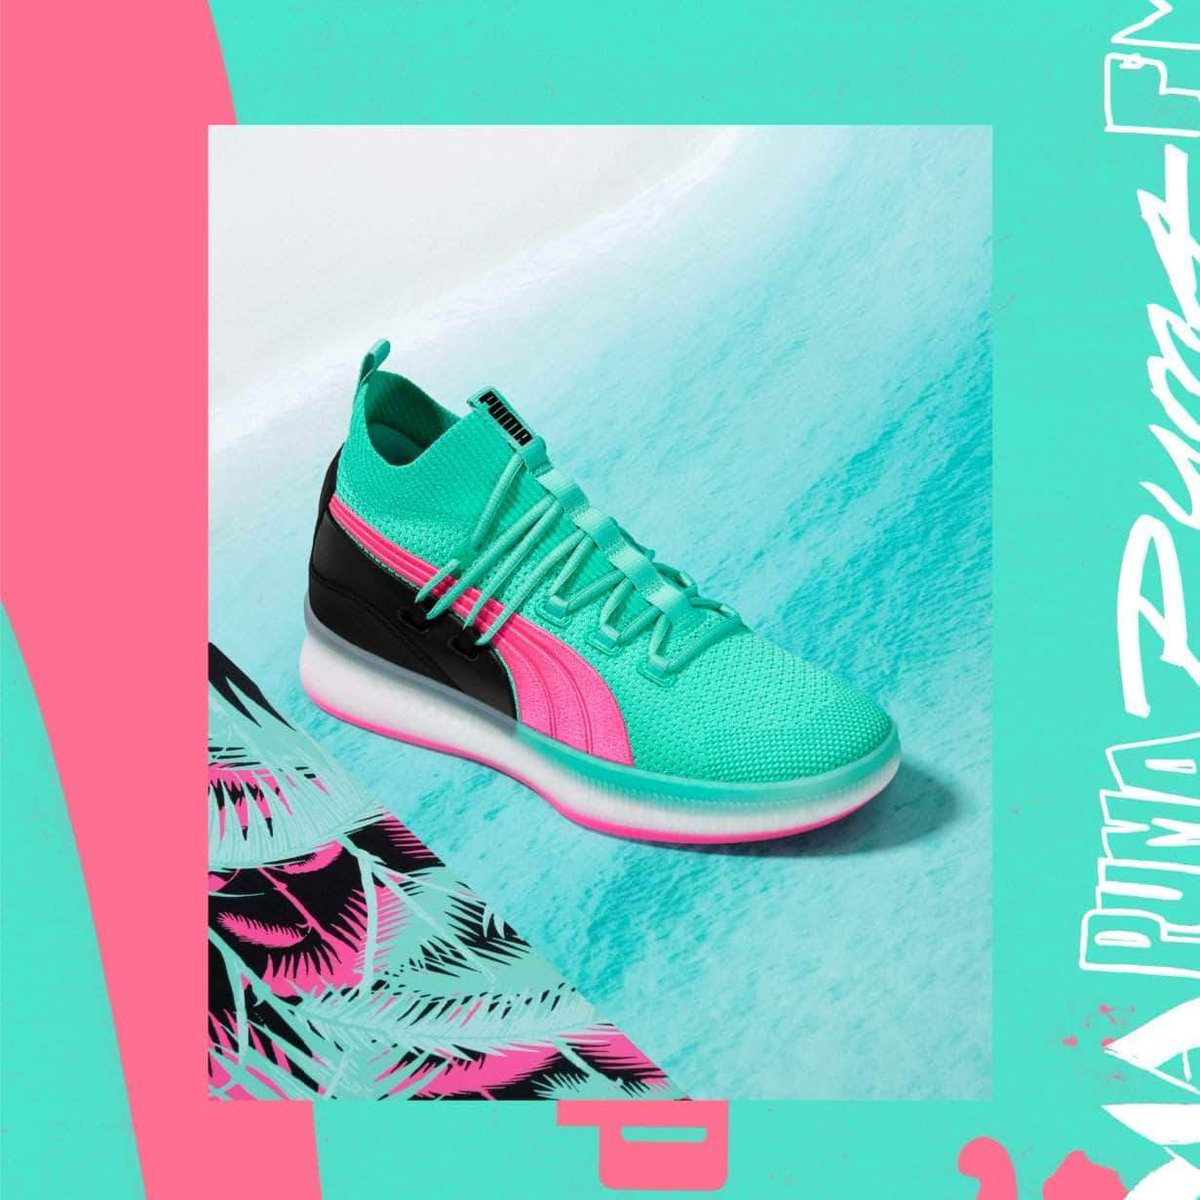 30bebee10915 Summer vibes coming in from PUMA Hoops with the new Clyde Court in